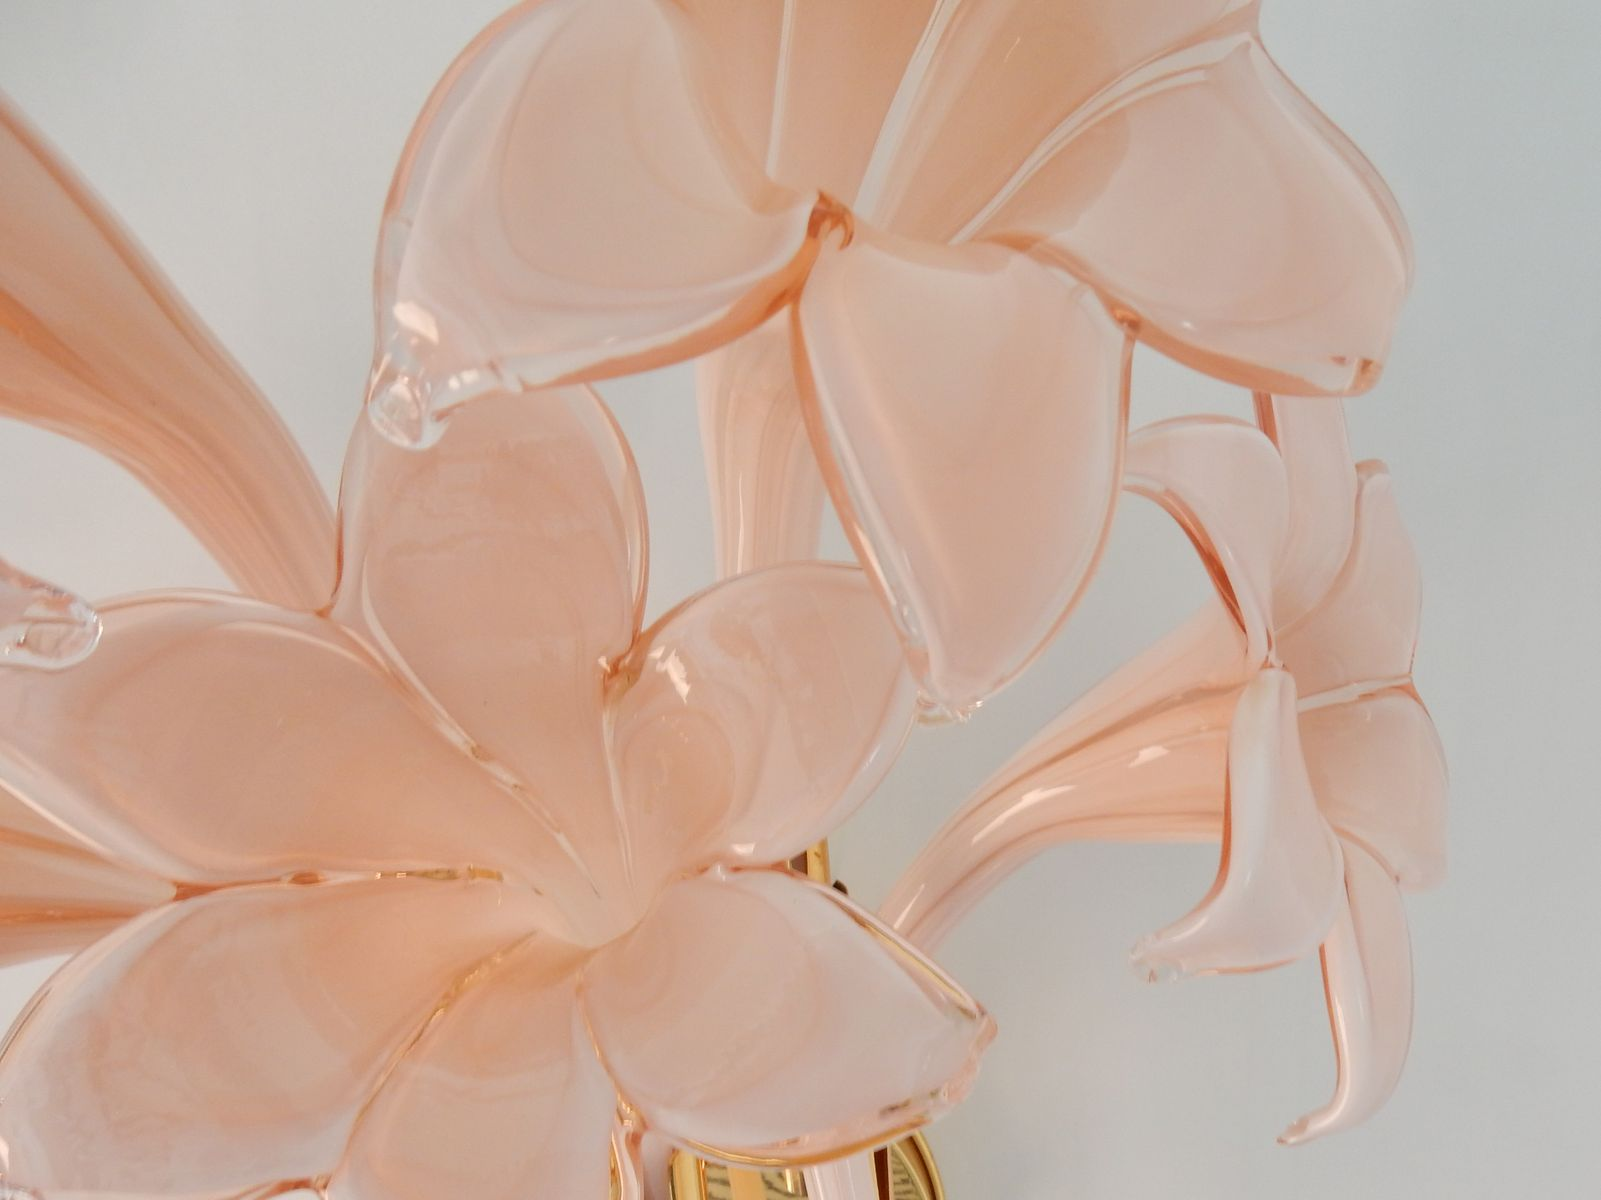 Vintage Murano Glass Flower Wall Lights, Set of 2 for sale at Pamono